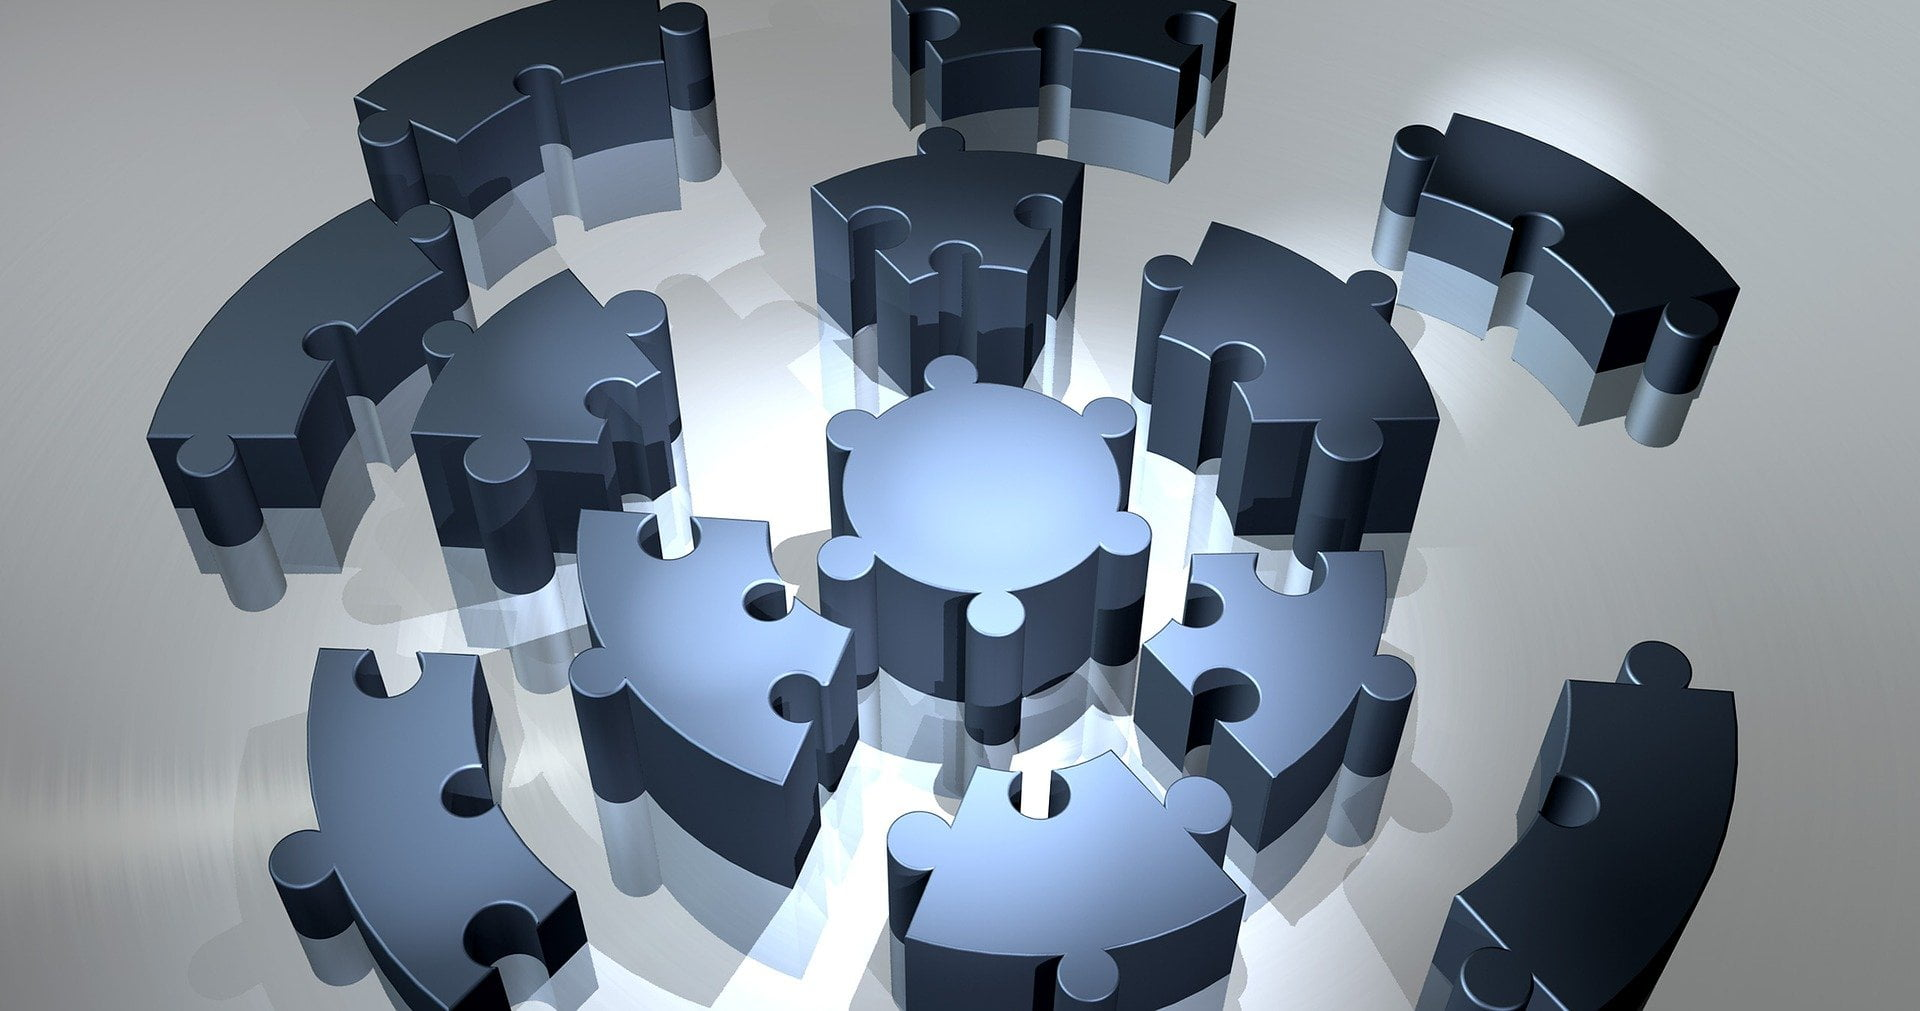 Systems Dynamic (Systems Thinking) explained